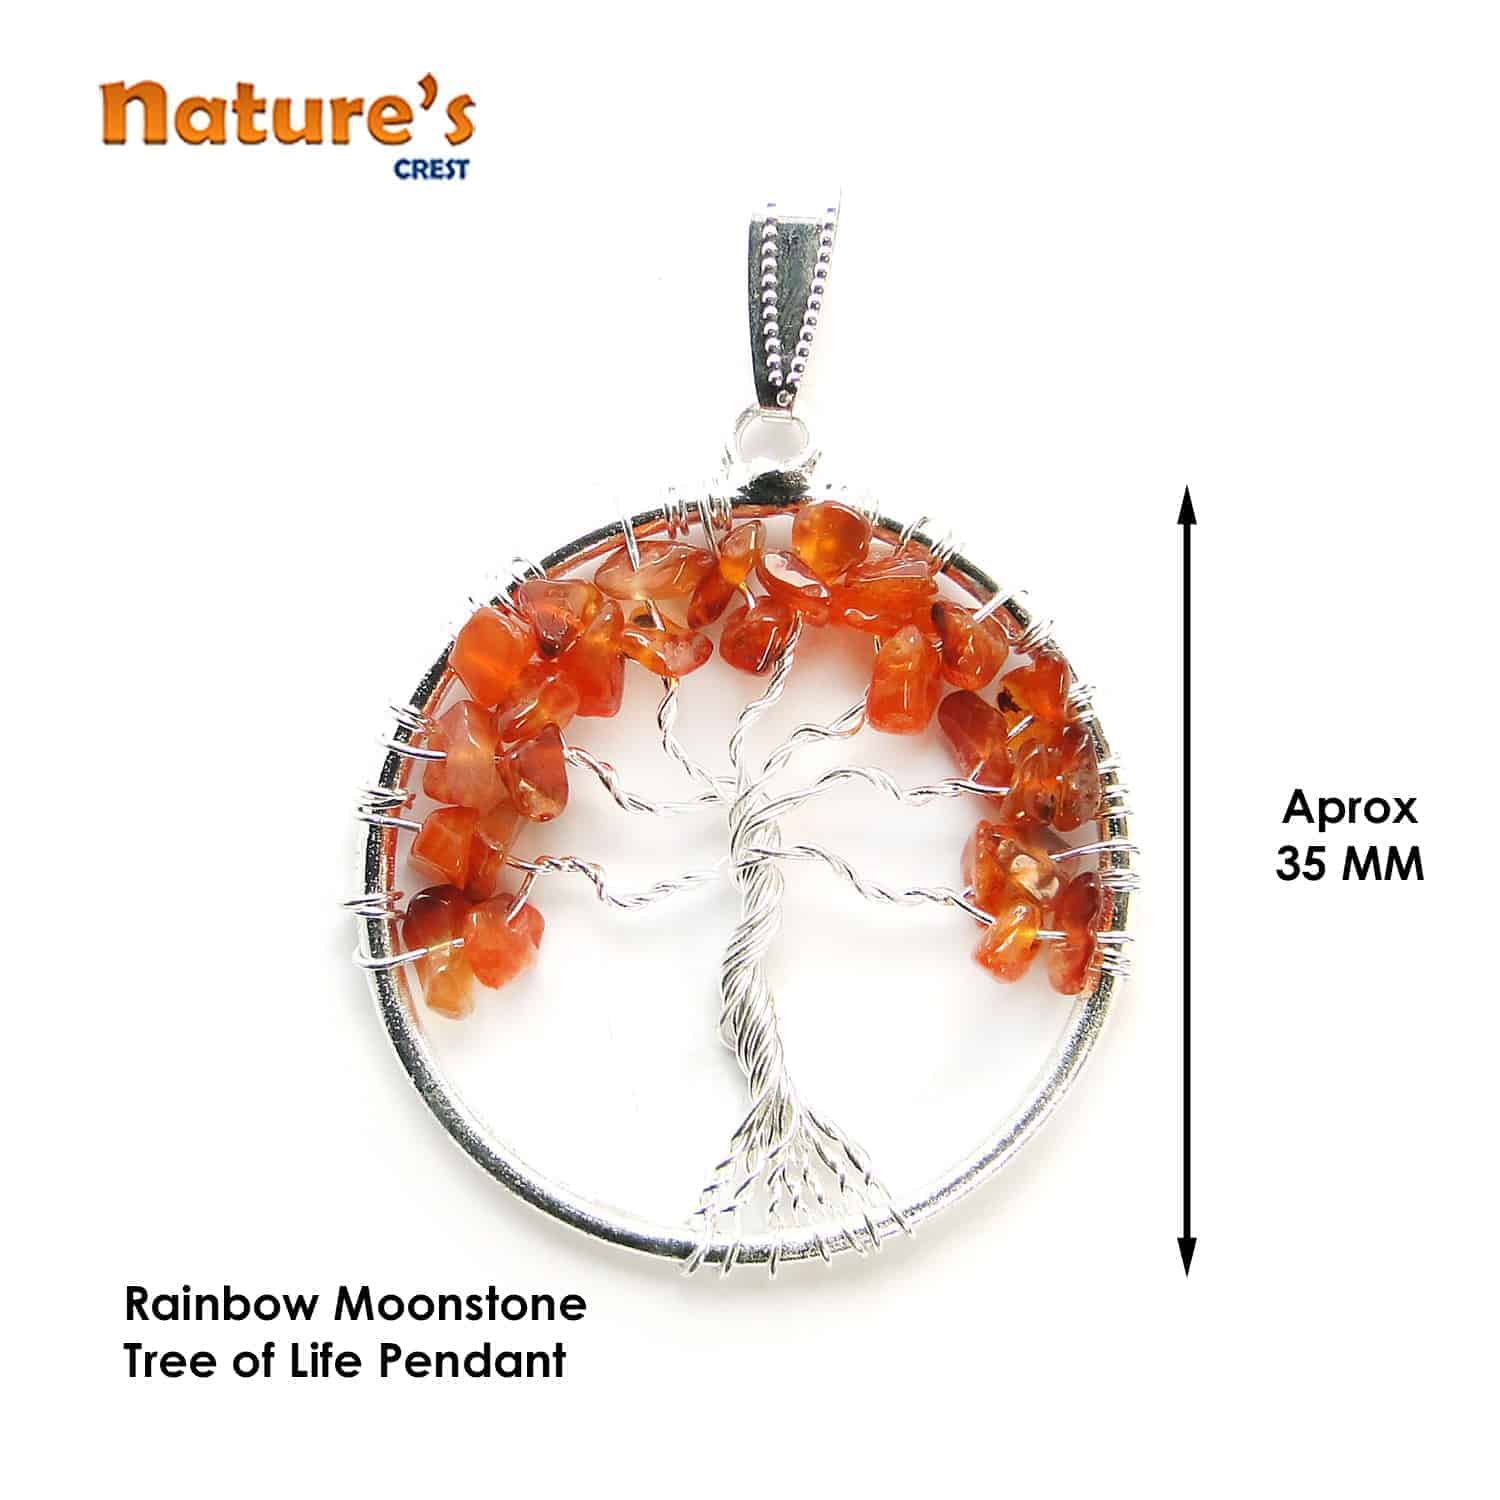 Red Carnelian Tree of Life Pendant Nature's Crest TOL013 ₹249.00